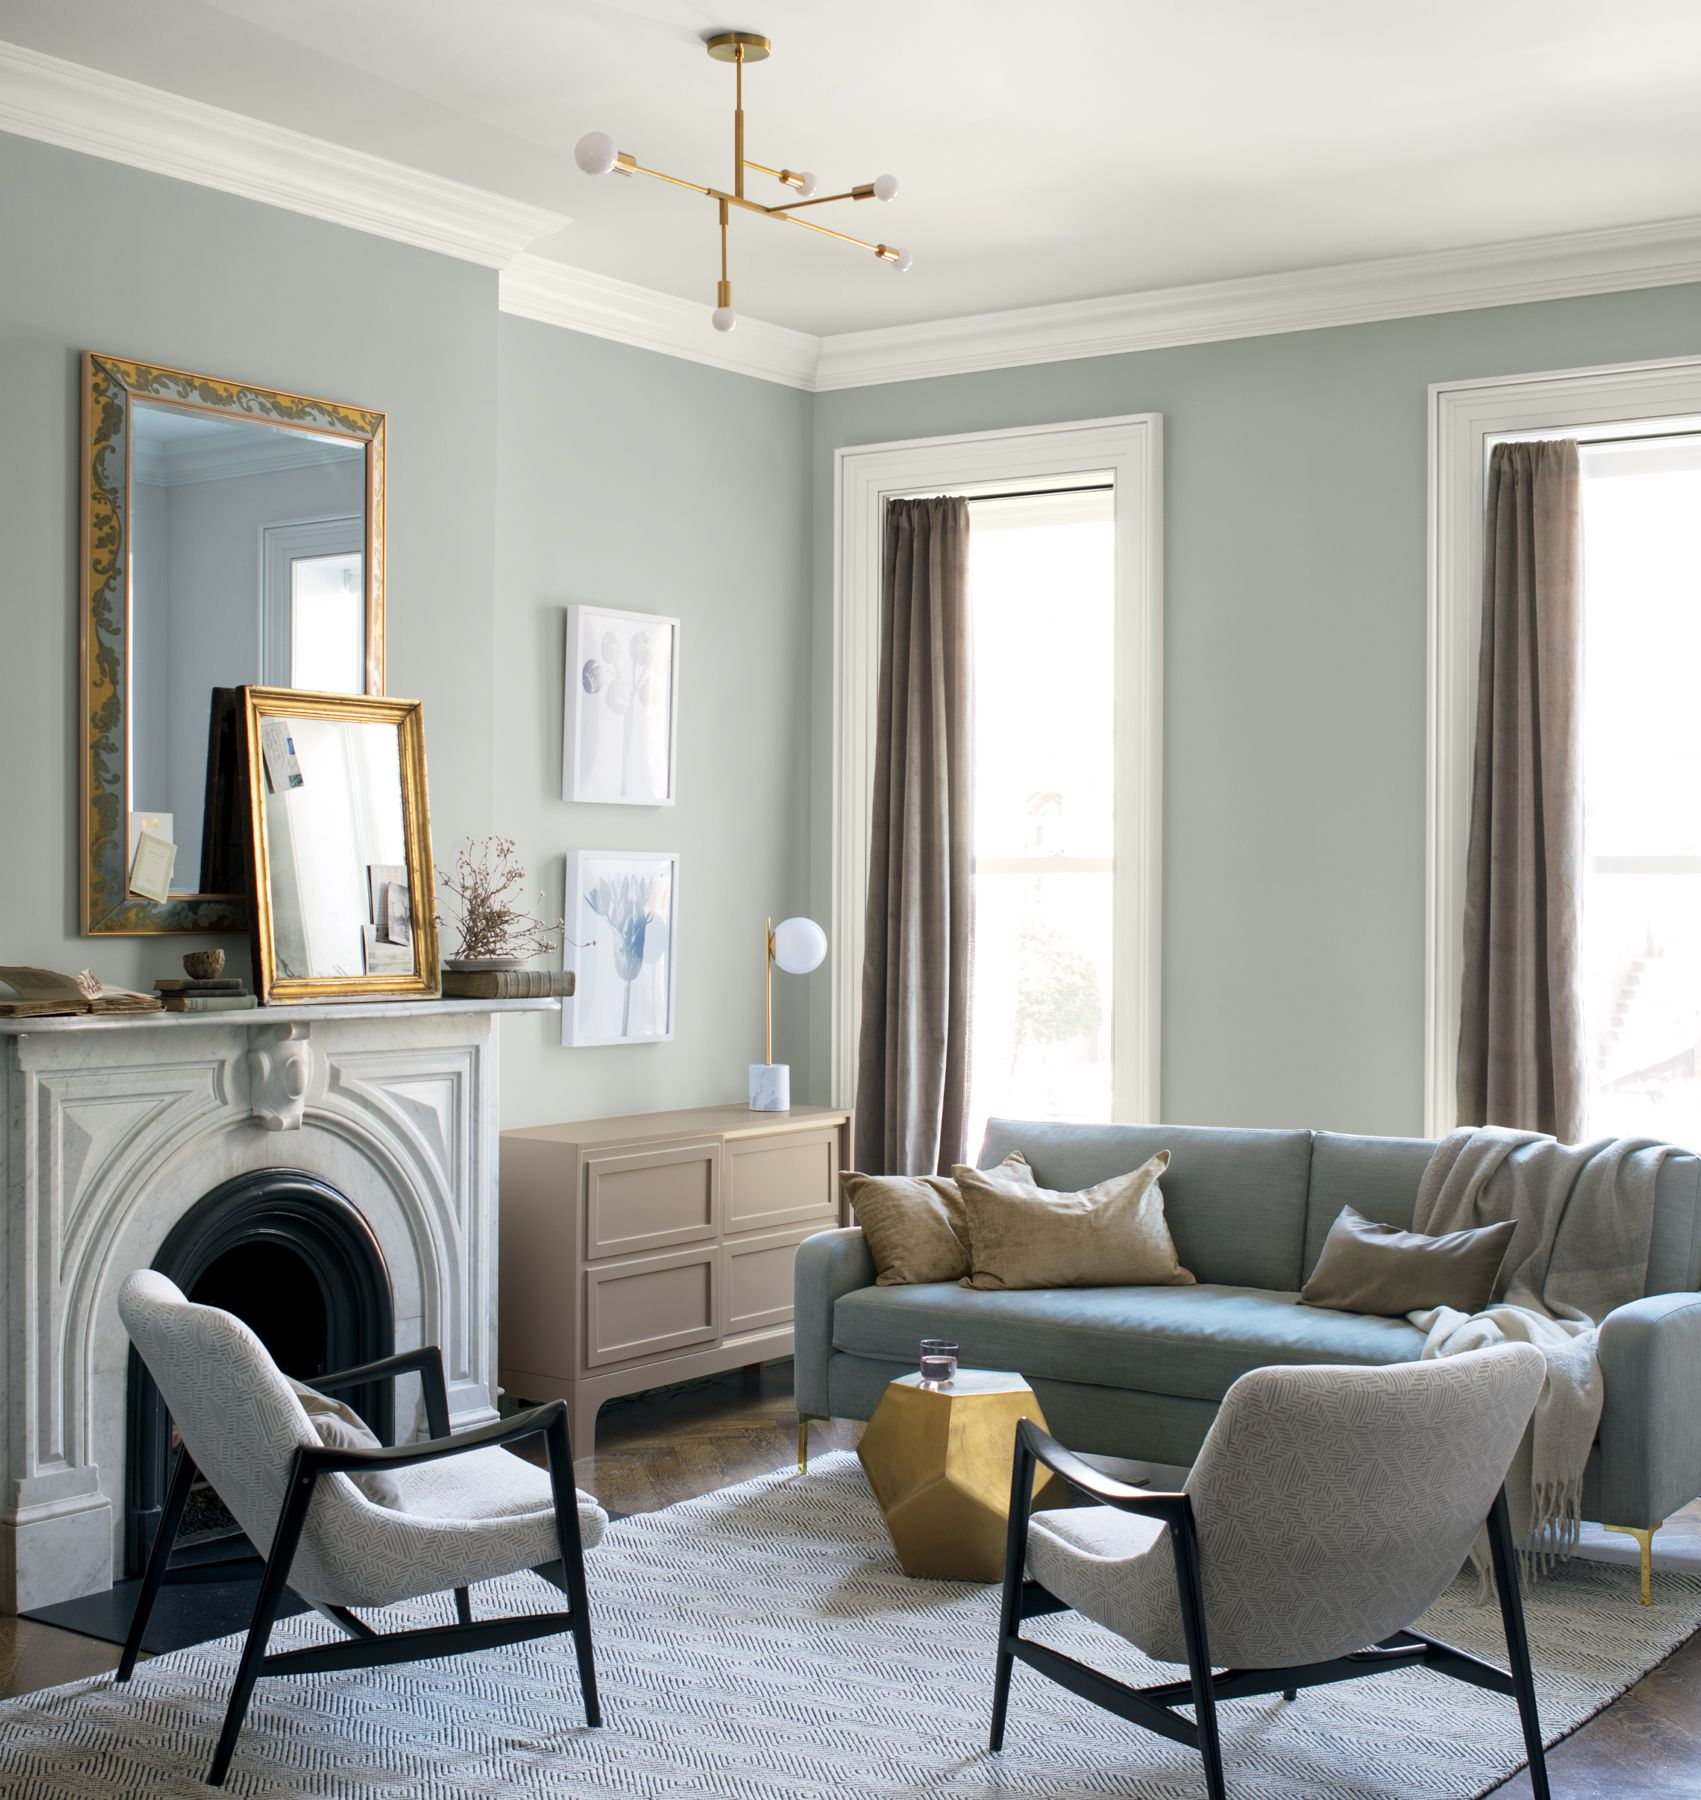 benjamin moore 2019 color of the year & Room Color Ideas - Decorate with Color